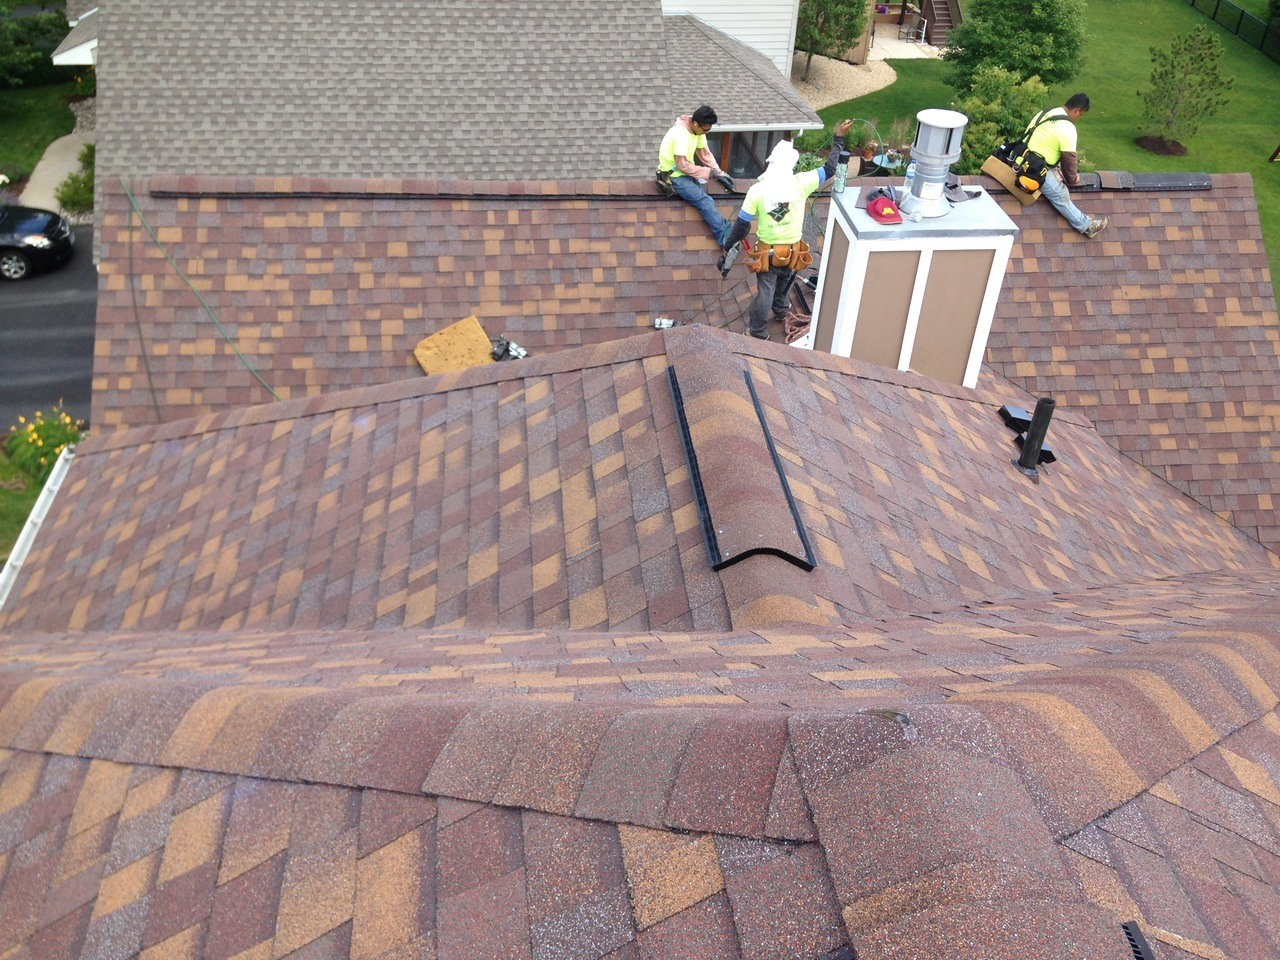 Construction company local crew on roof installing flashing on residential home